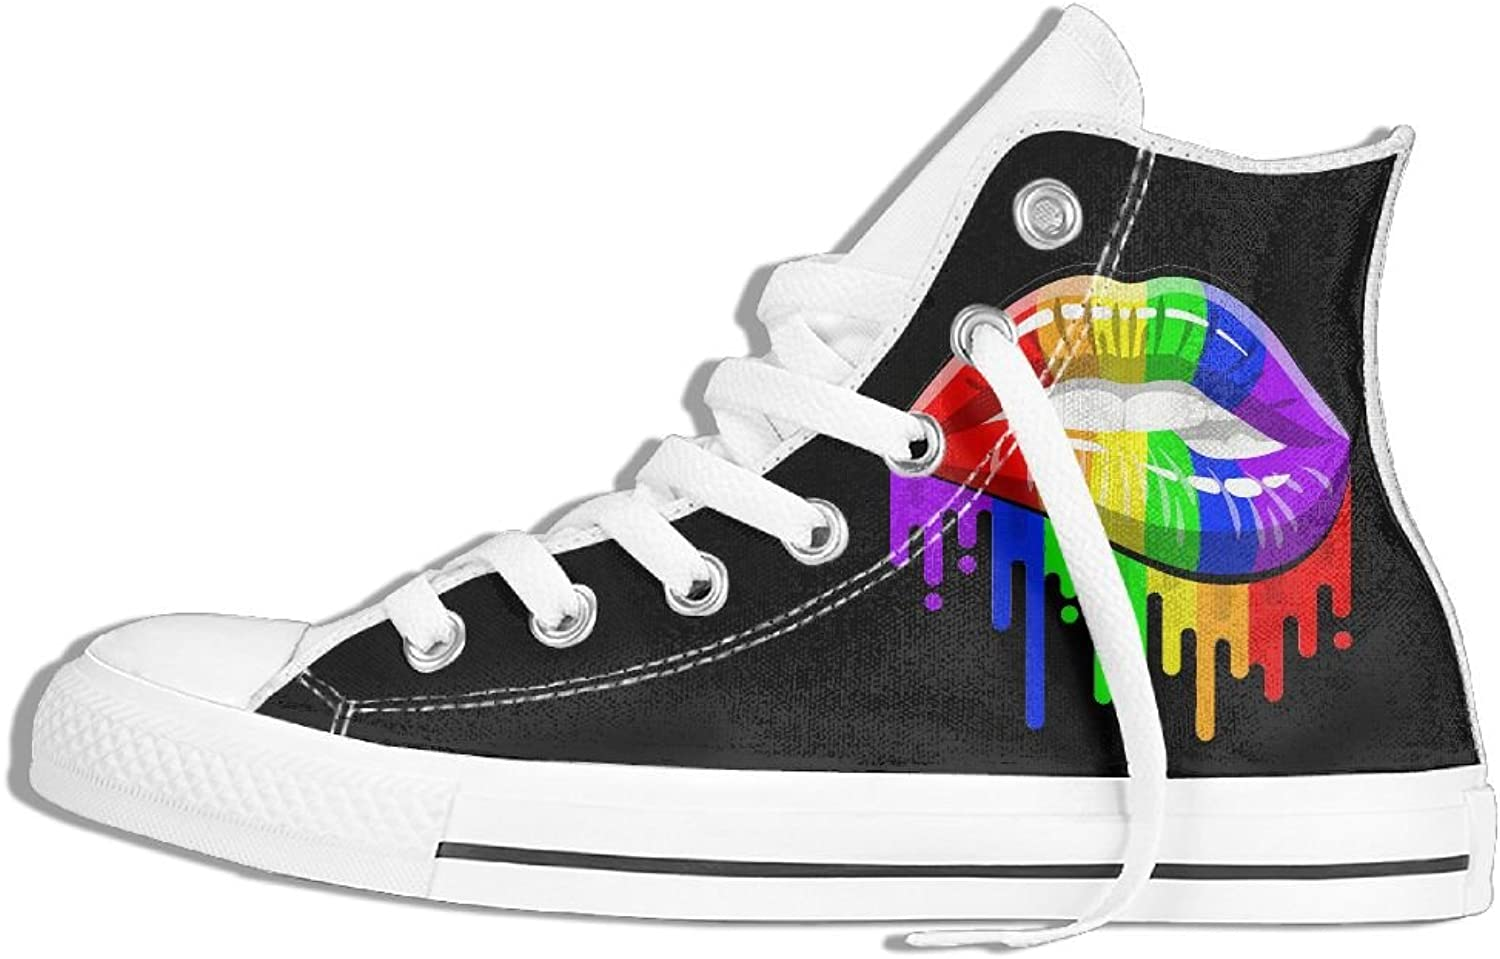 Unisex High Top Sneakers LGBT Rainbow Lips Classic Canvas shoes Breathable Sneaker